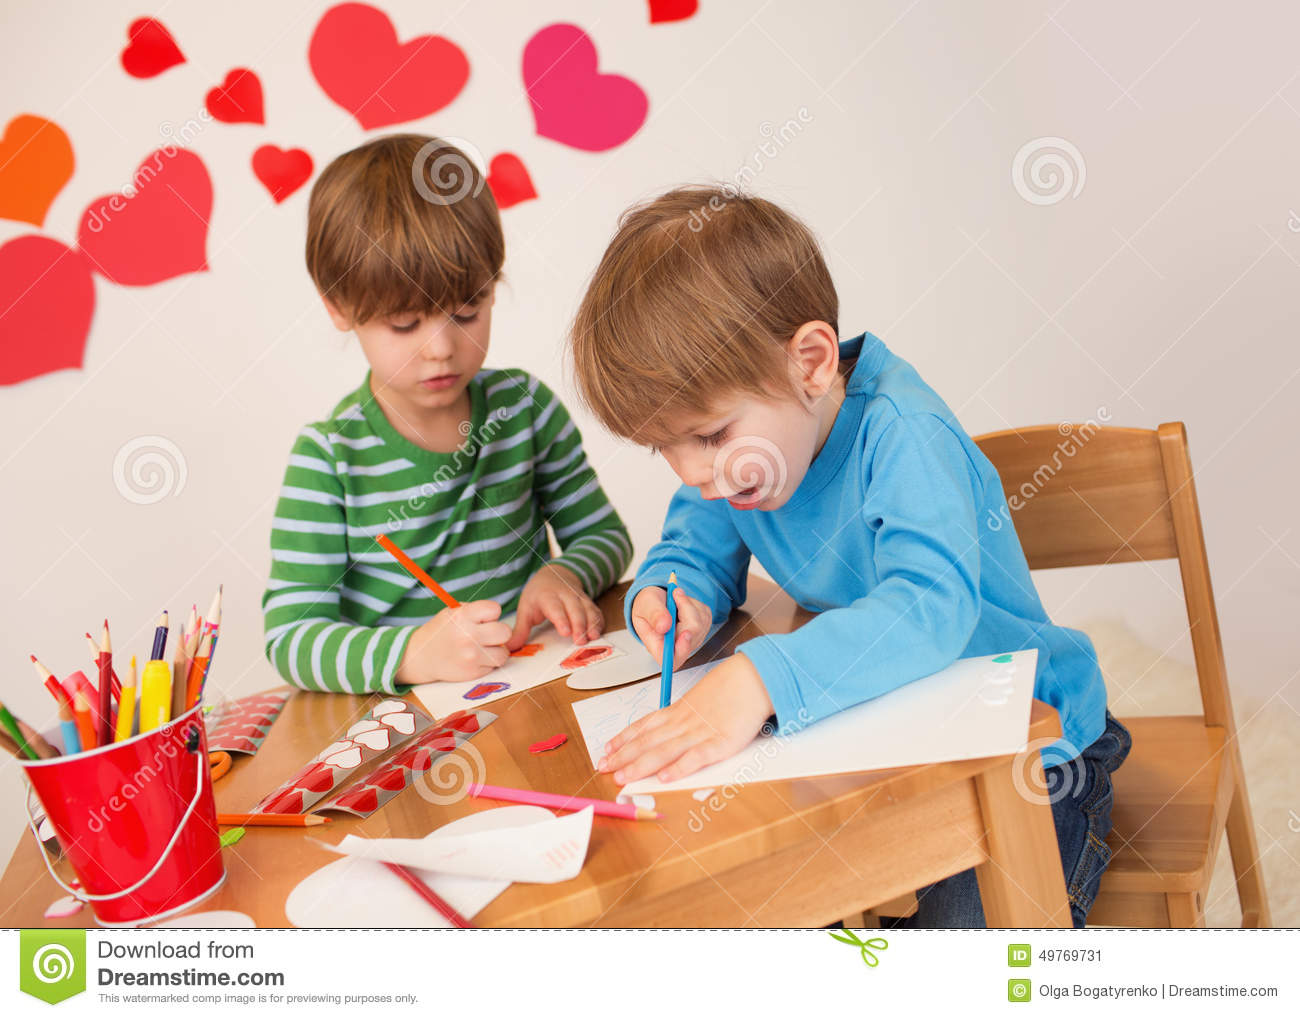 Valentines Arts And Crafts For Kids